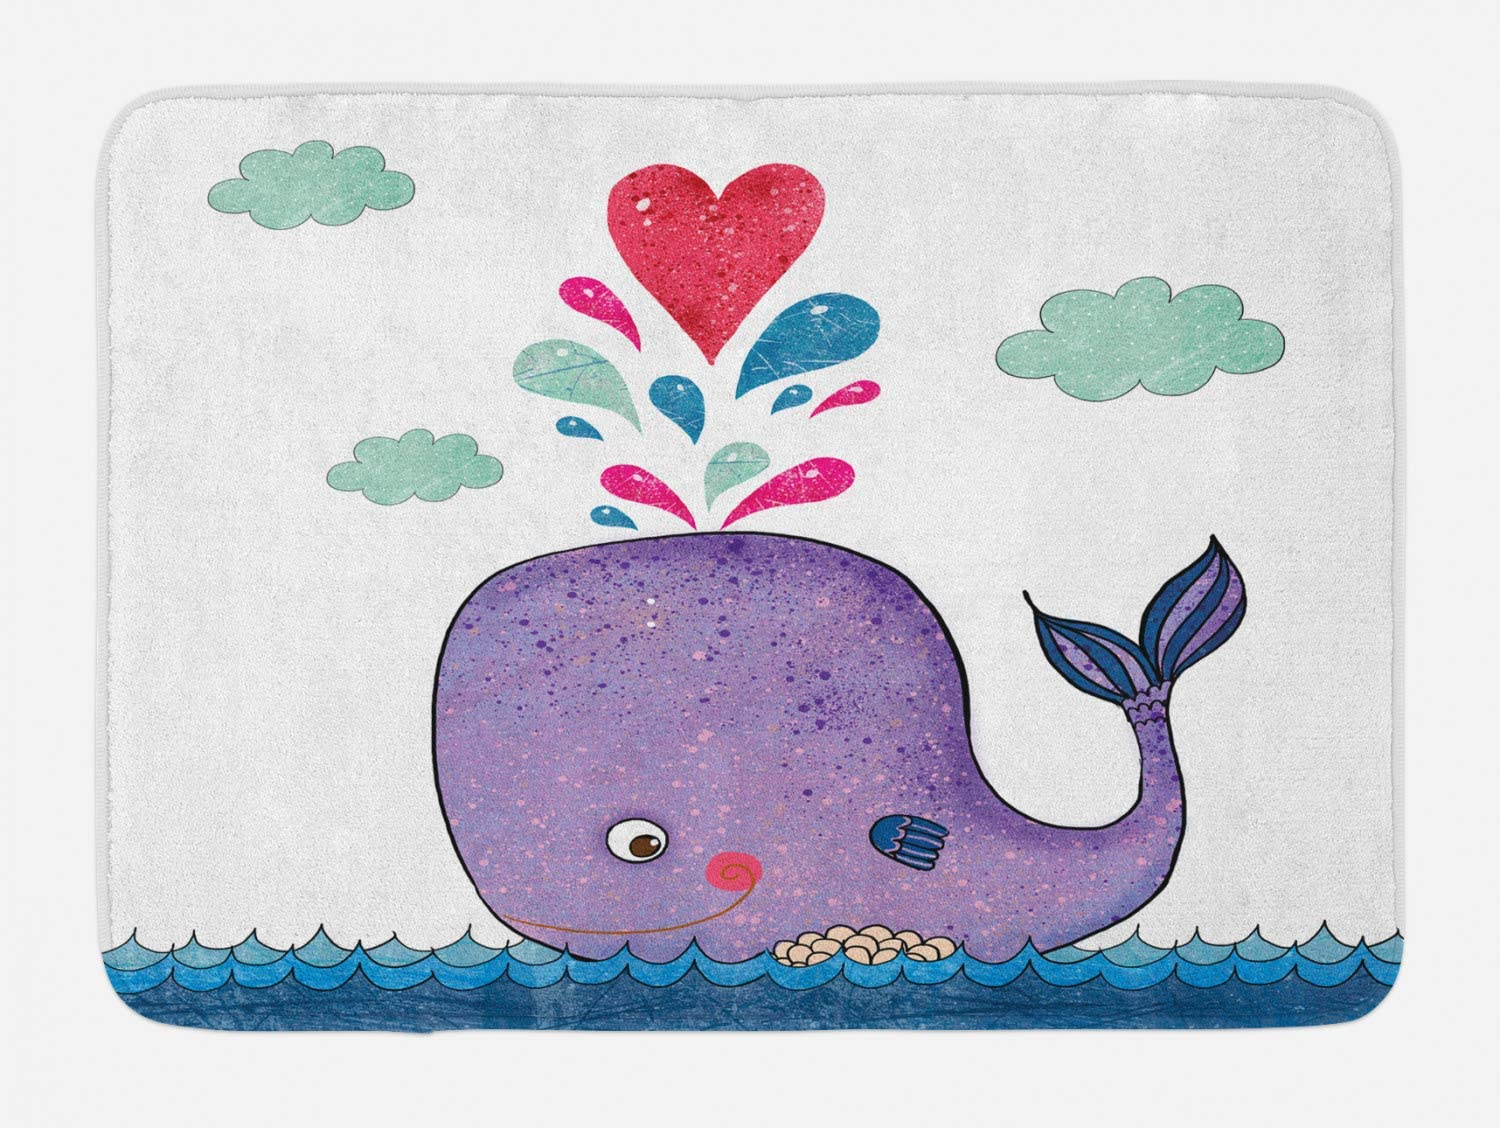 Ambesonne Whale Bath Mat, Smiling Mammal Motif Hearts and Clouds on Sea Print Nursery Childish Design, Plush Bathroom Decor Mat with Non Slip Backing, 29.5